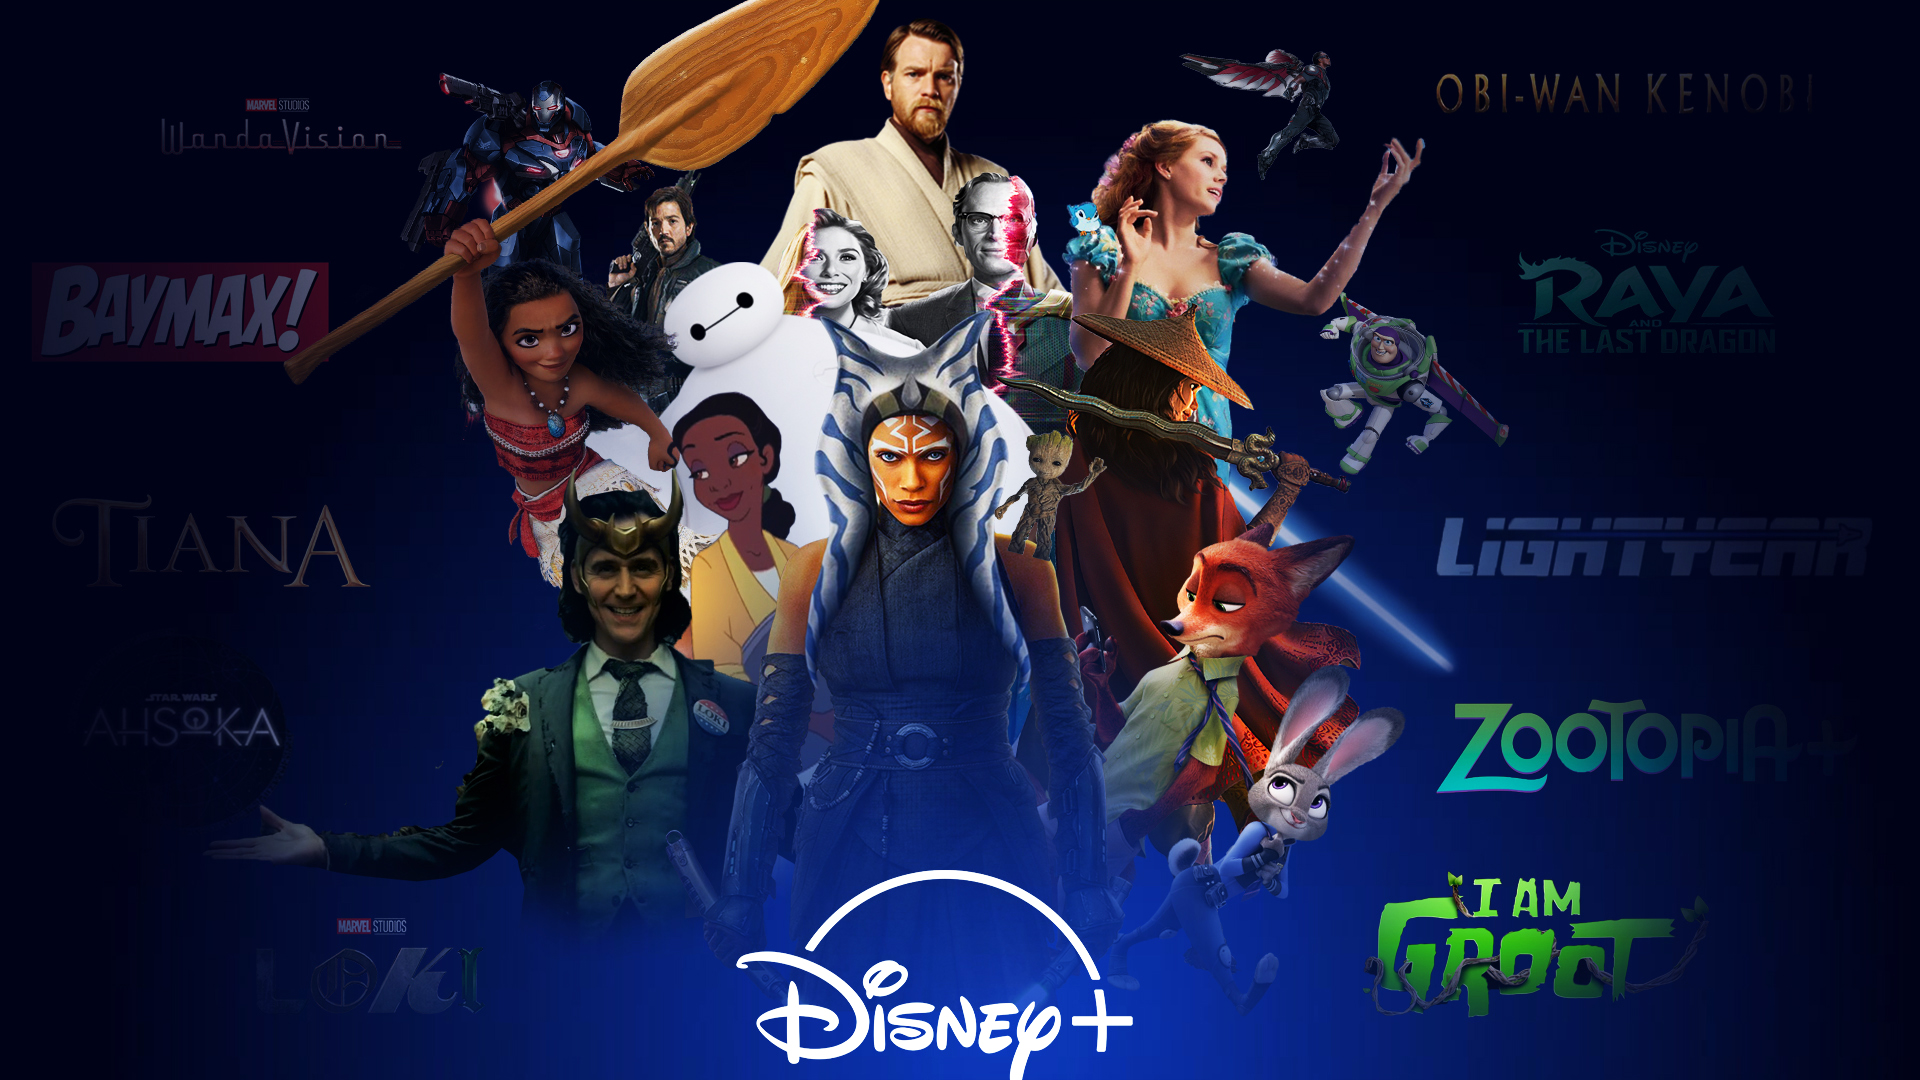 Disney Plus Announcements Wallpaper By Thekingblader995 On Deviantart